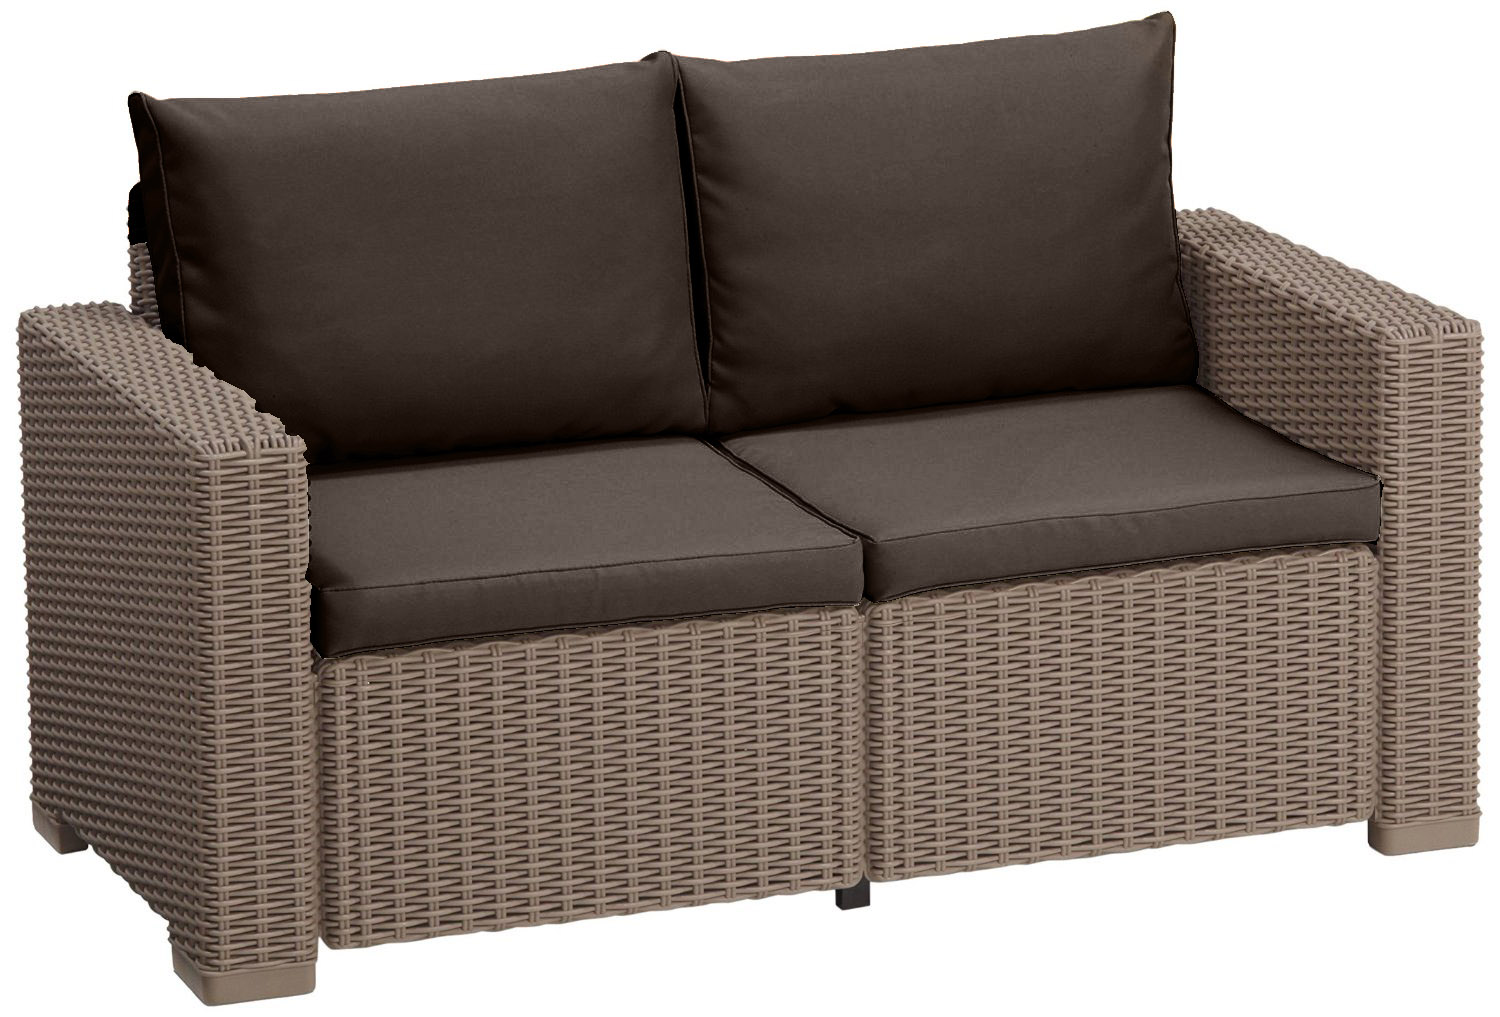 wicker chair cushions with ties swing vancouver cushion pads for keter allibert california rattan garden